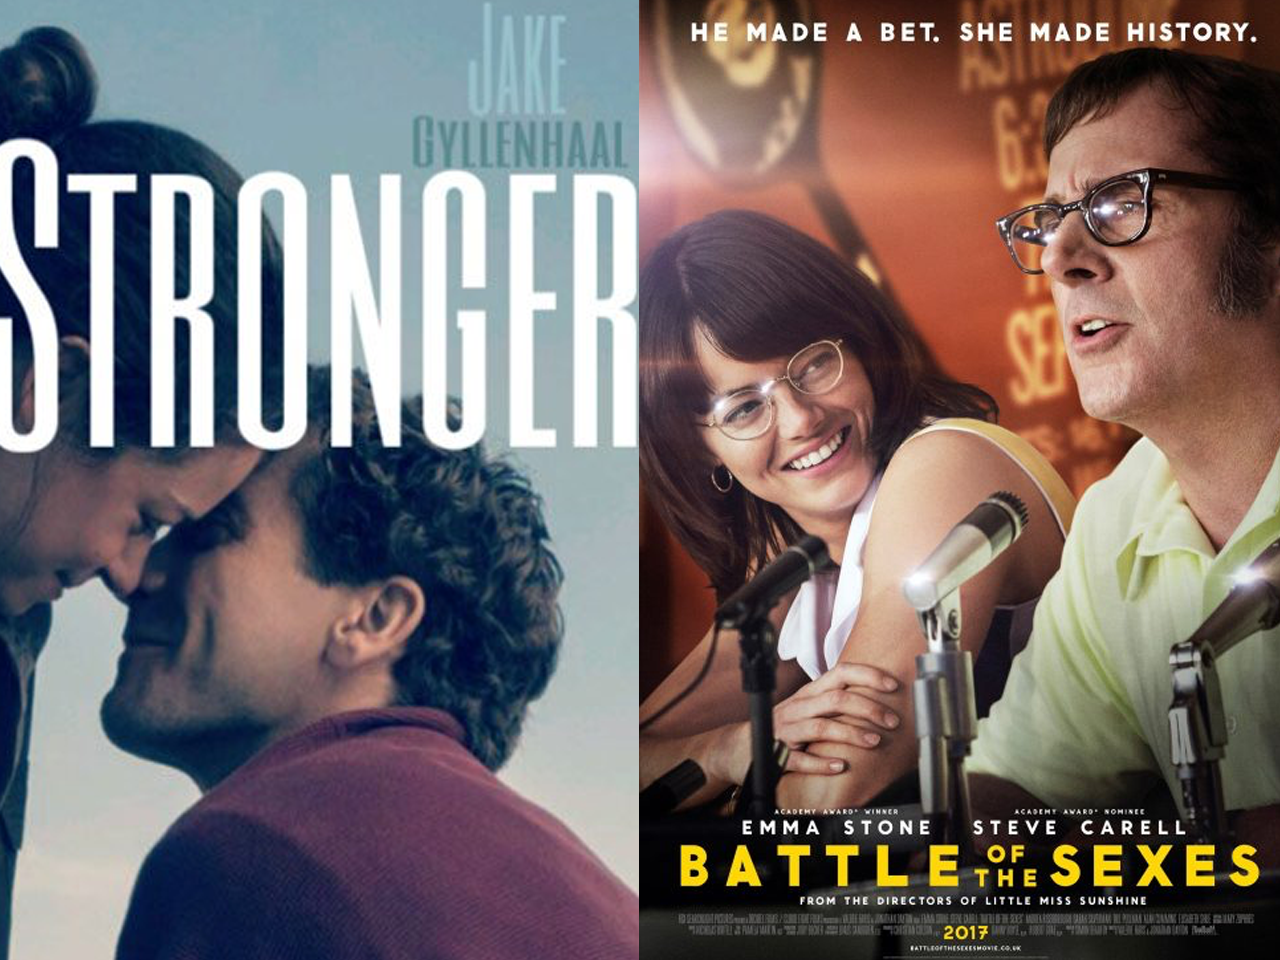 Stronger and Battle of the Sexes Split Posters.png